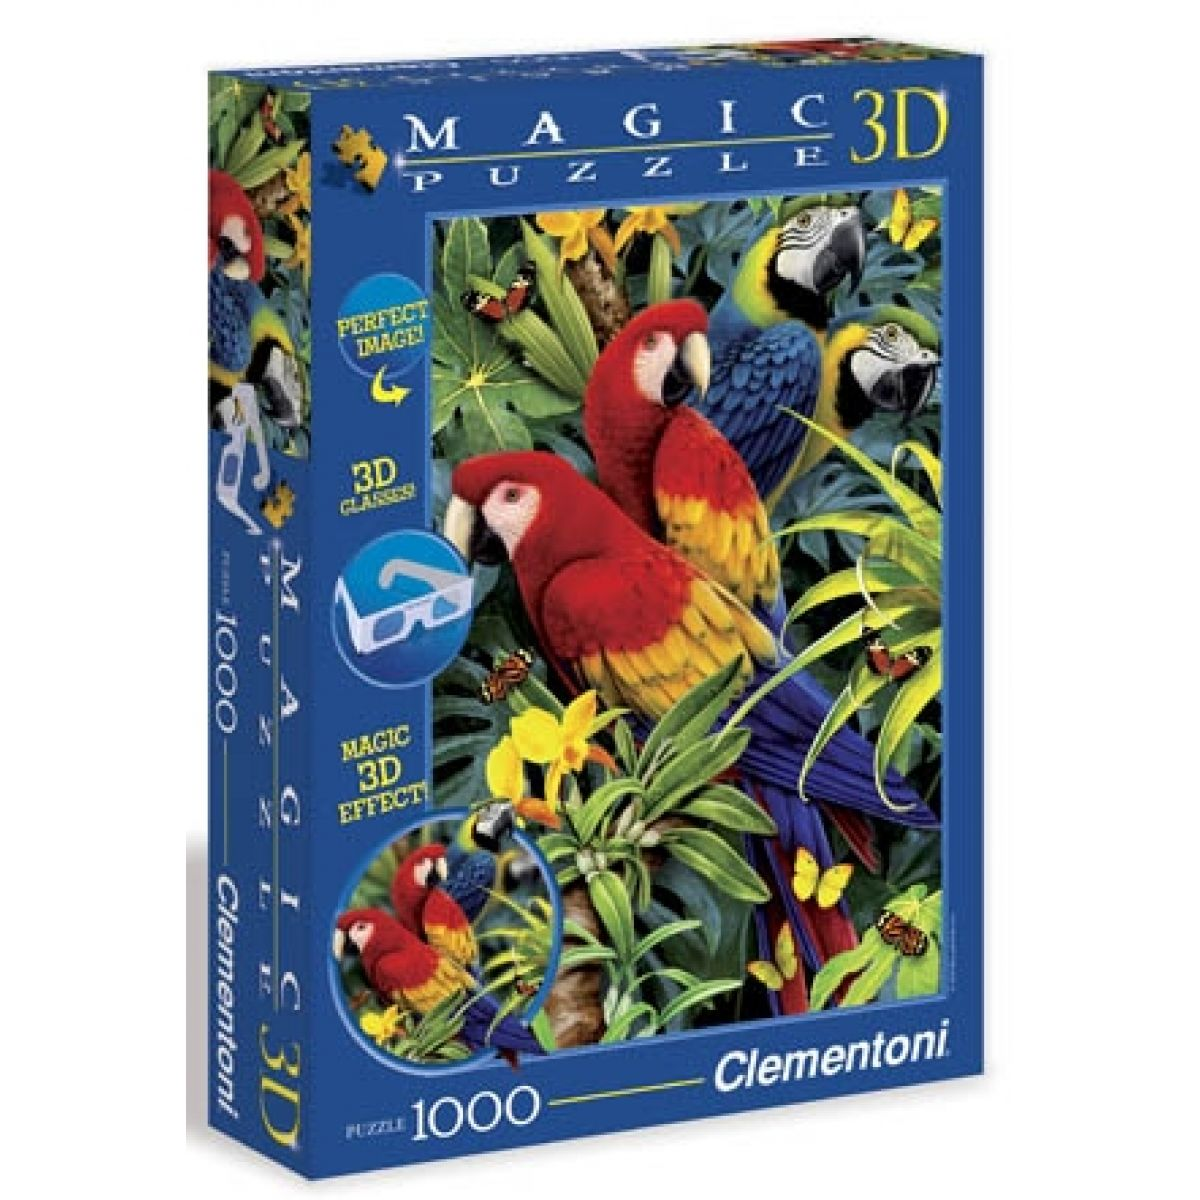 Clementoni 39188 - Puzzle Magic 3D 1000, Papoušci